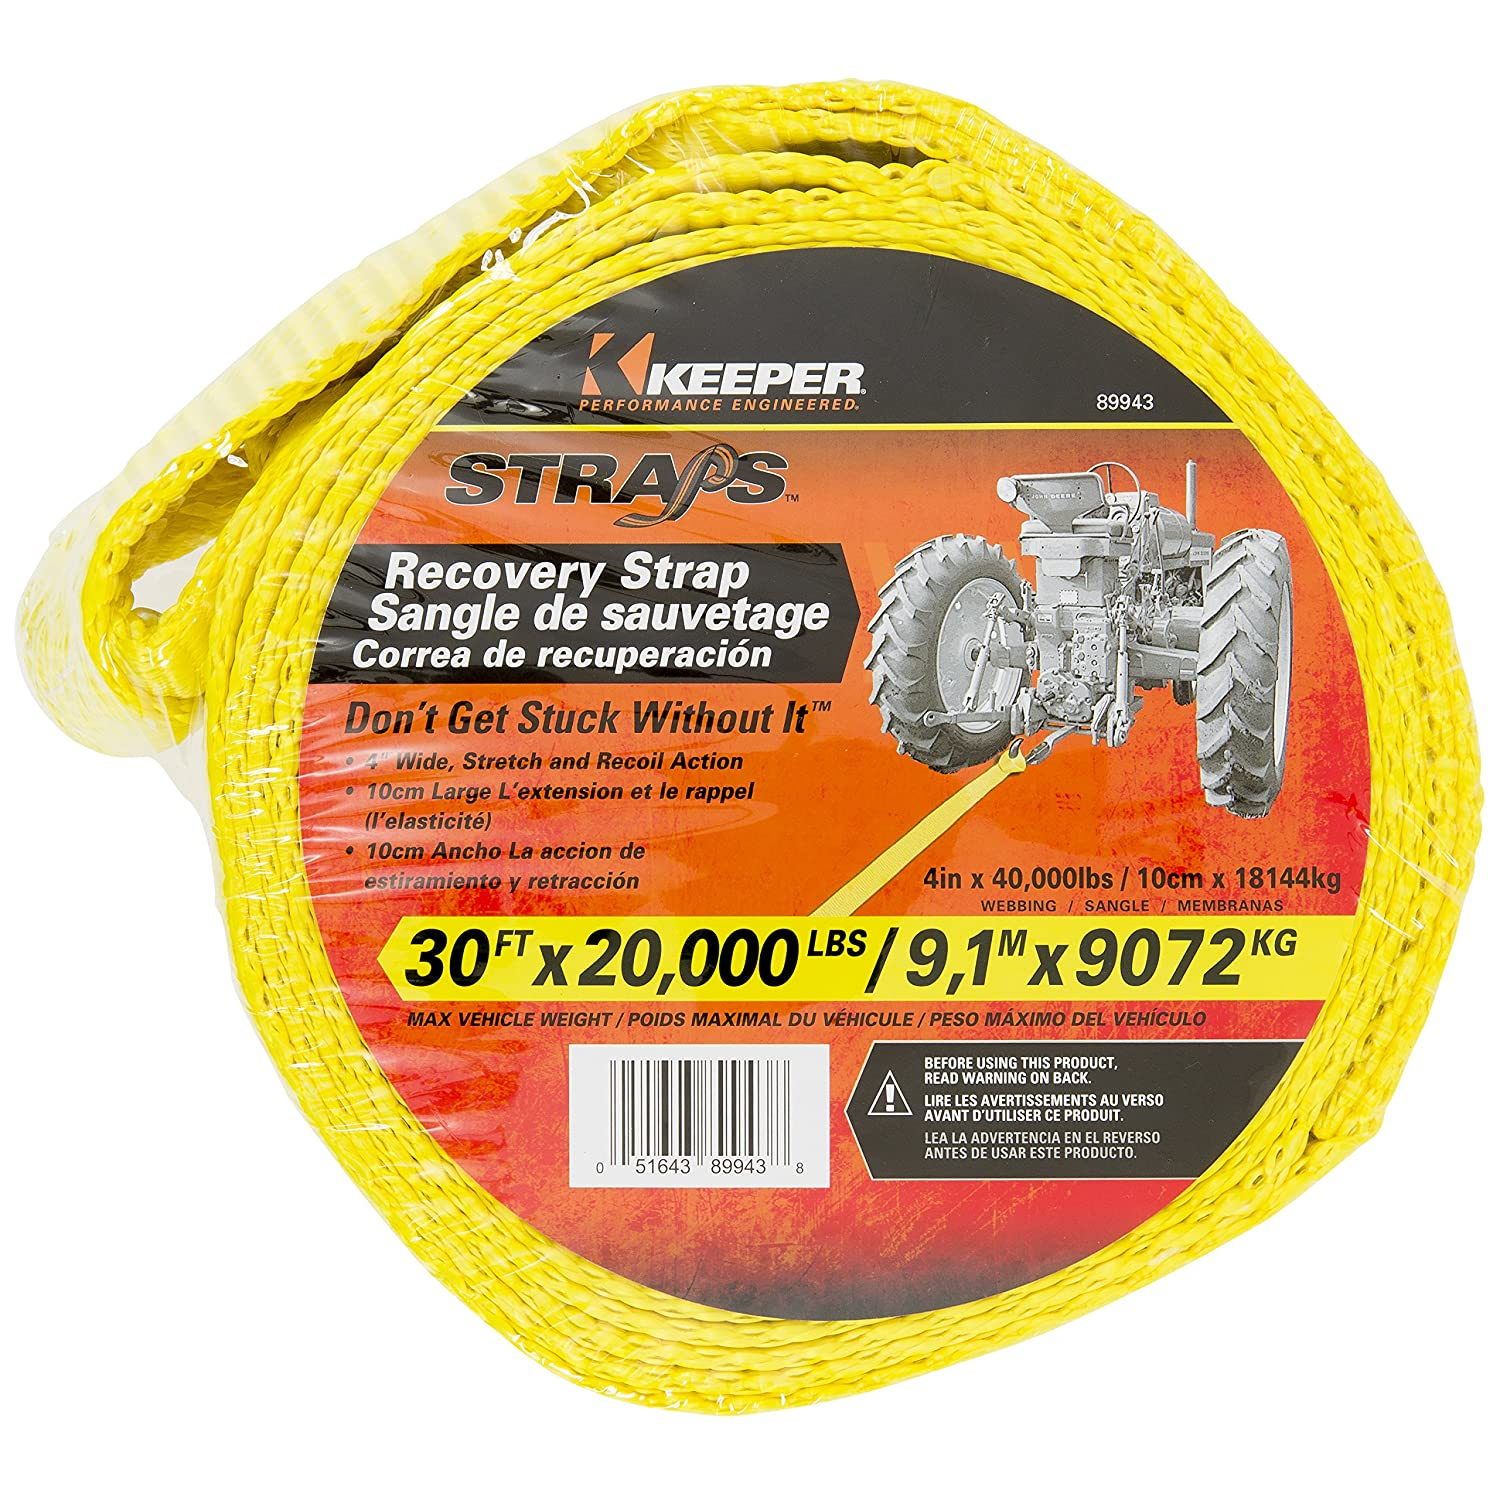 Max Vehicle Weight Keeper 89943 30 x 4 Vehicle Recovery Strap 20,000 lbs